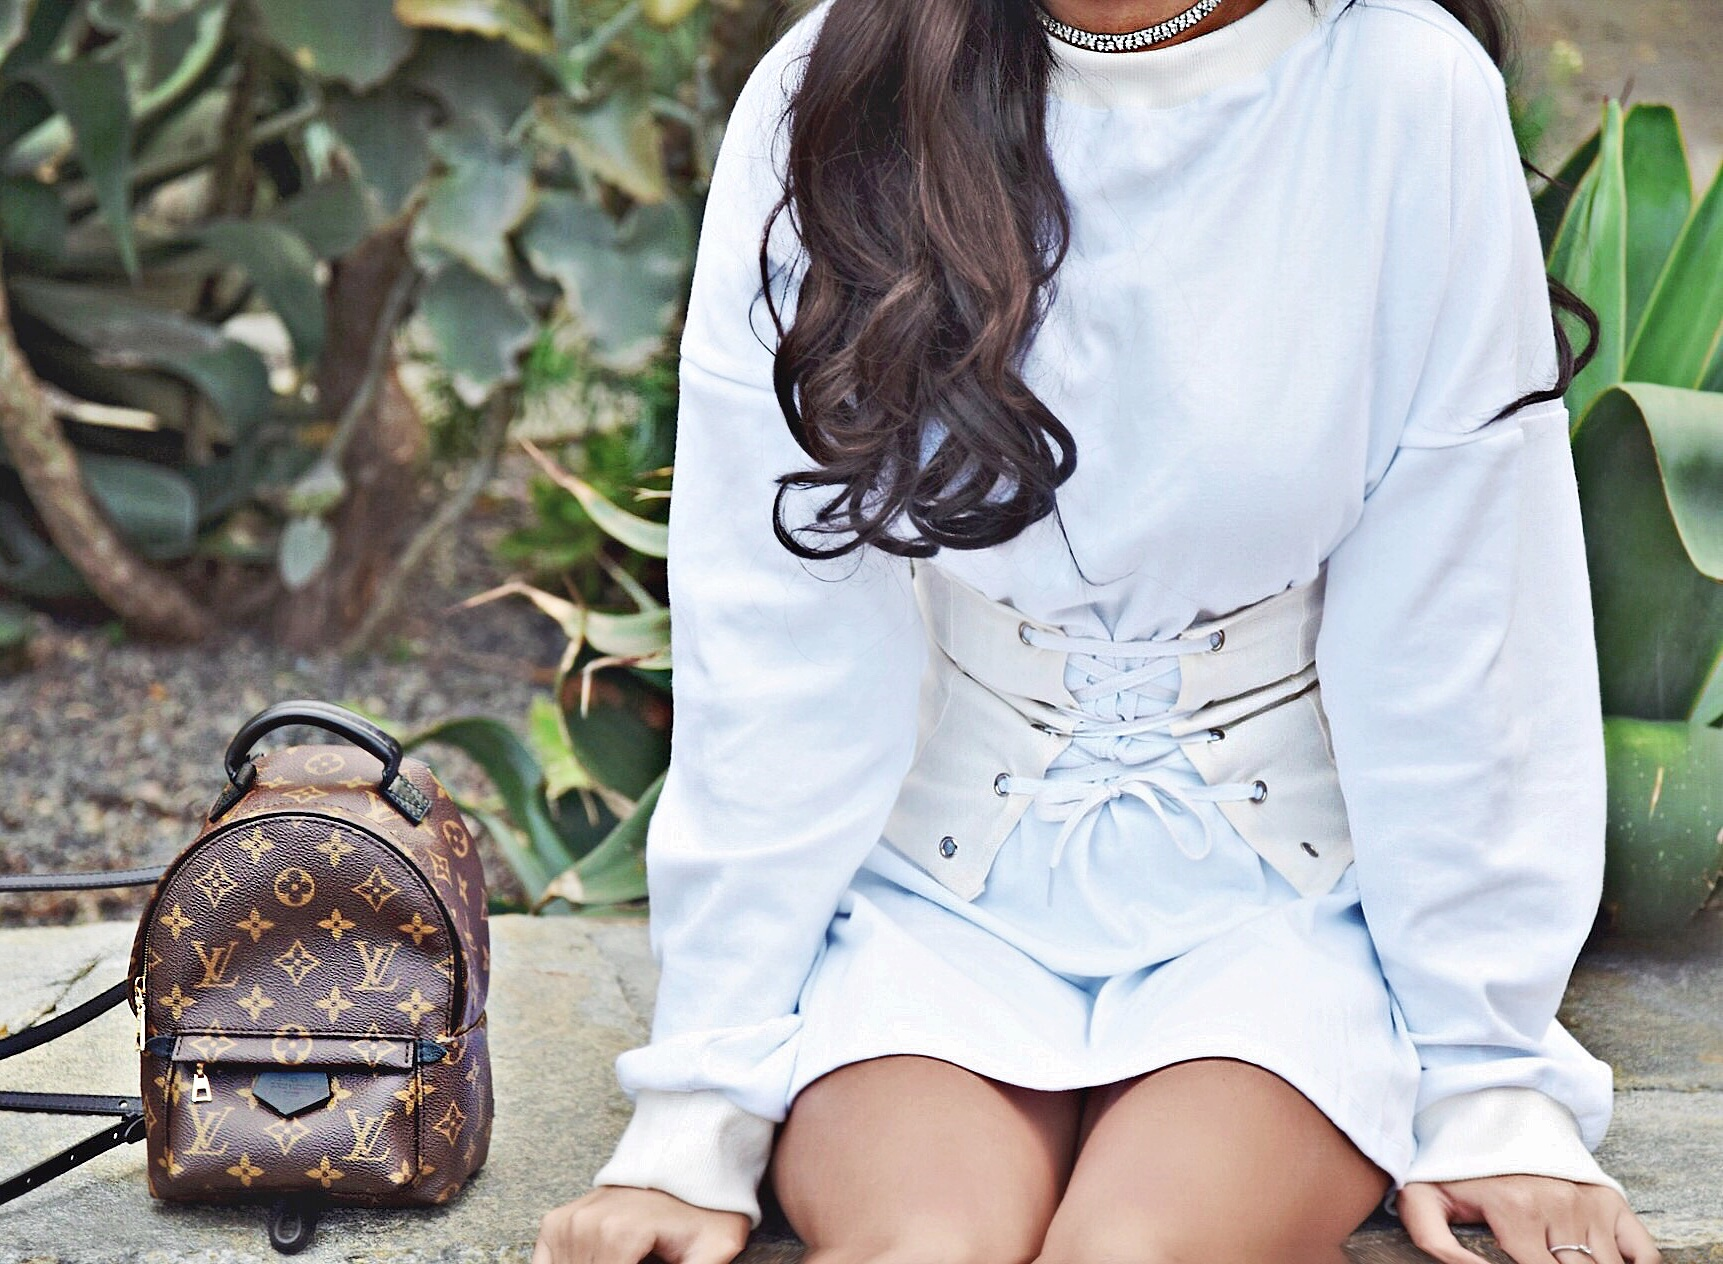 Lace It Up   The Corset Trend // My Mum Made It Sweatshirt Dress & White Corset Belt // Rhinestone Choker // Louis Vuitton Monogram Print Mini Backpack // Jeffrey Campbell Lace Up Heeled Booties // Los Angeles Fashion Blogger Daphne Blunt: To Style, With Love